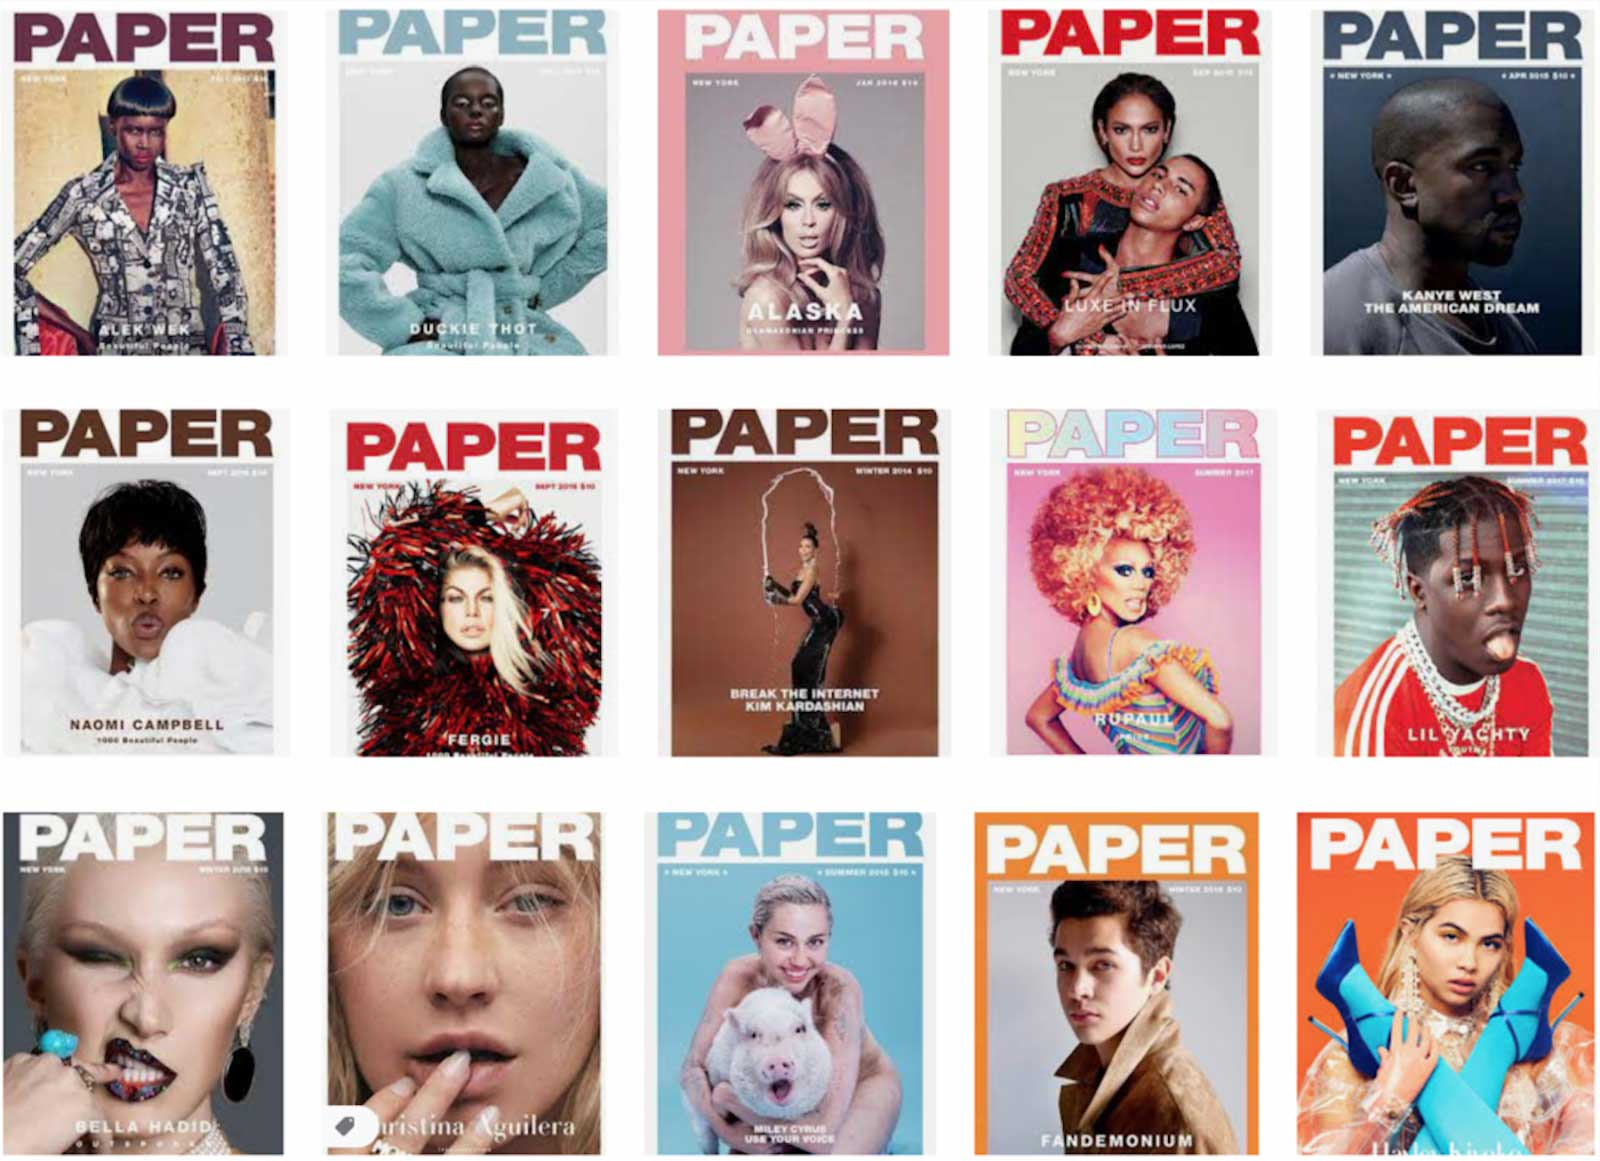 Paper magazine covers